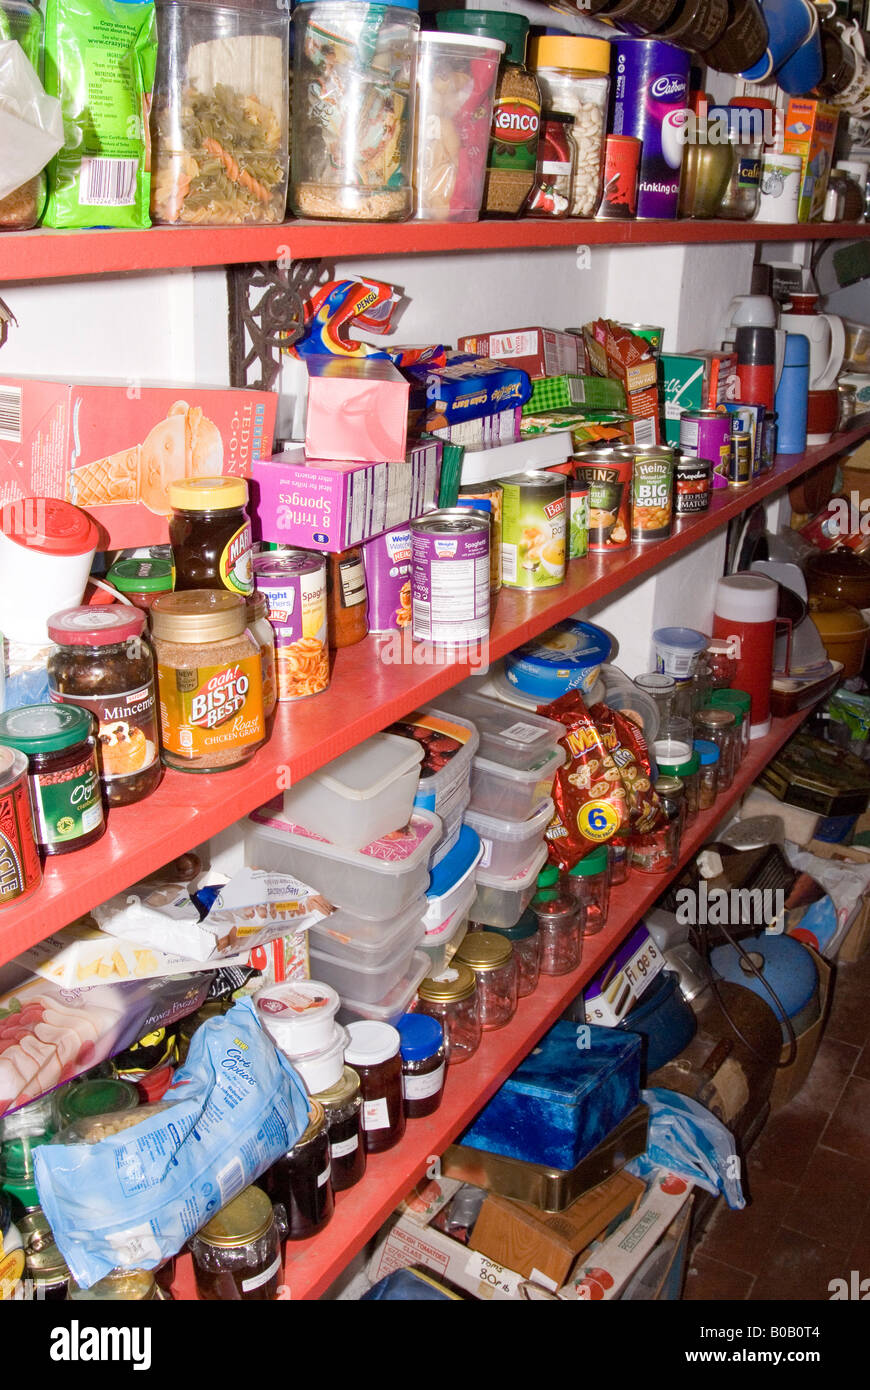 Untidy Larder full of tins of food and hoarded items - Stock Image